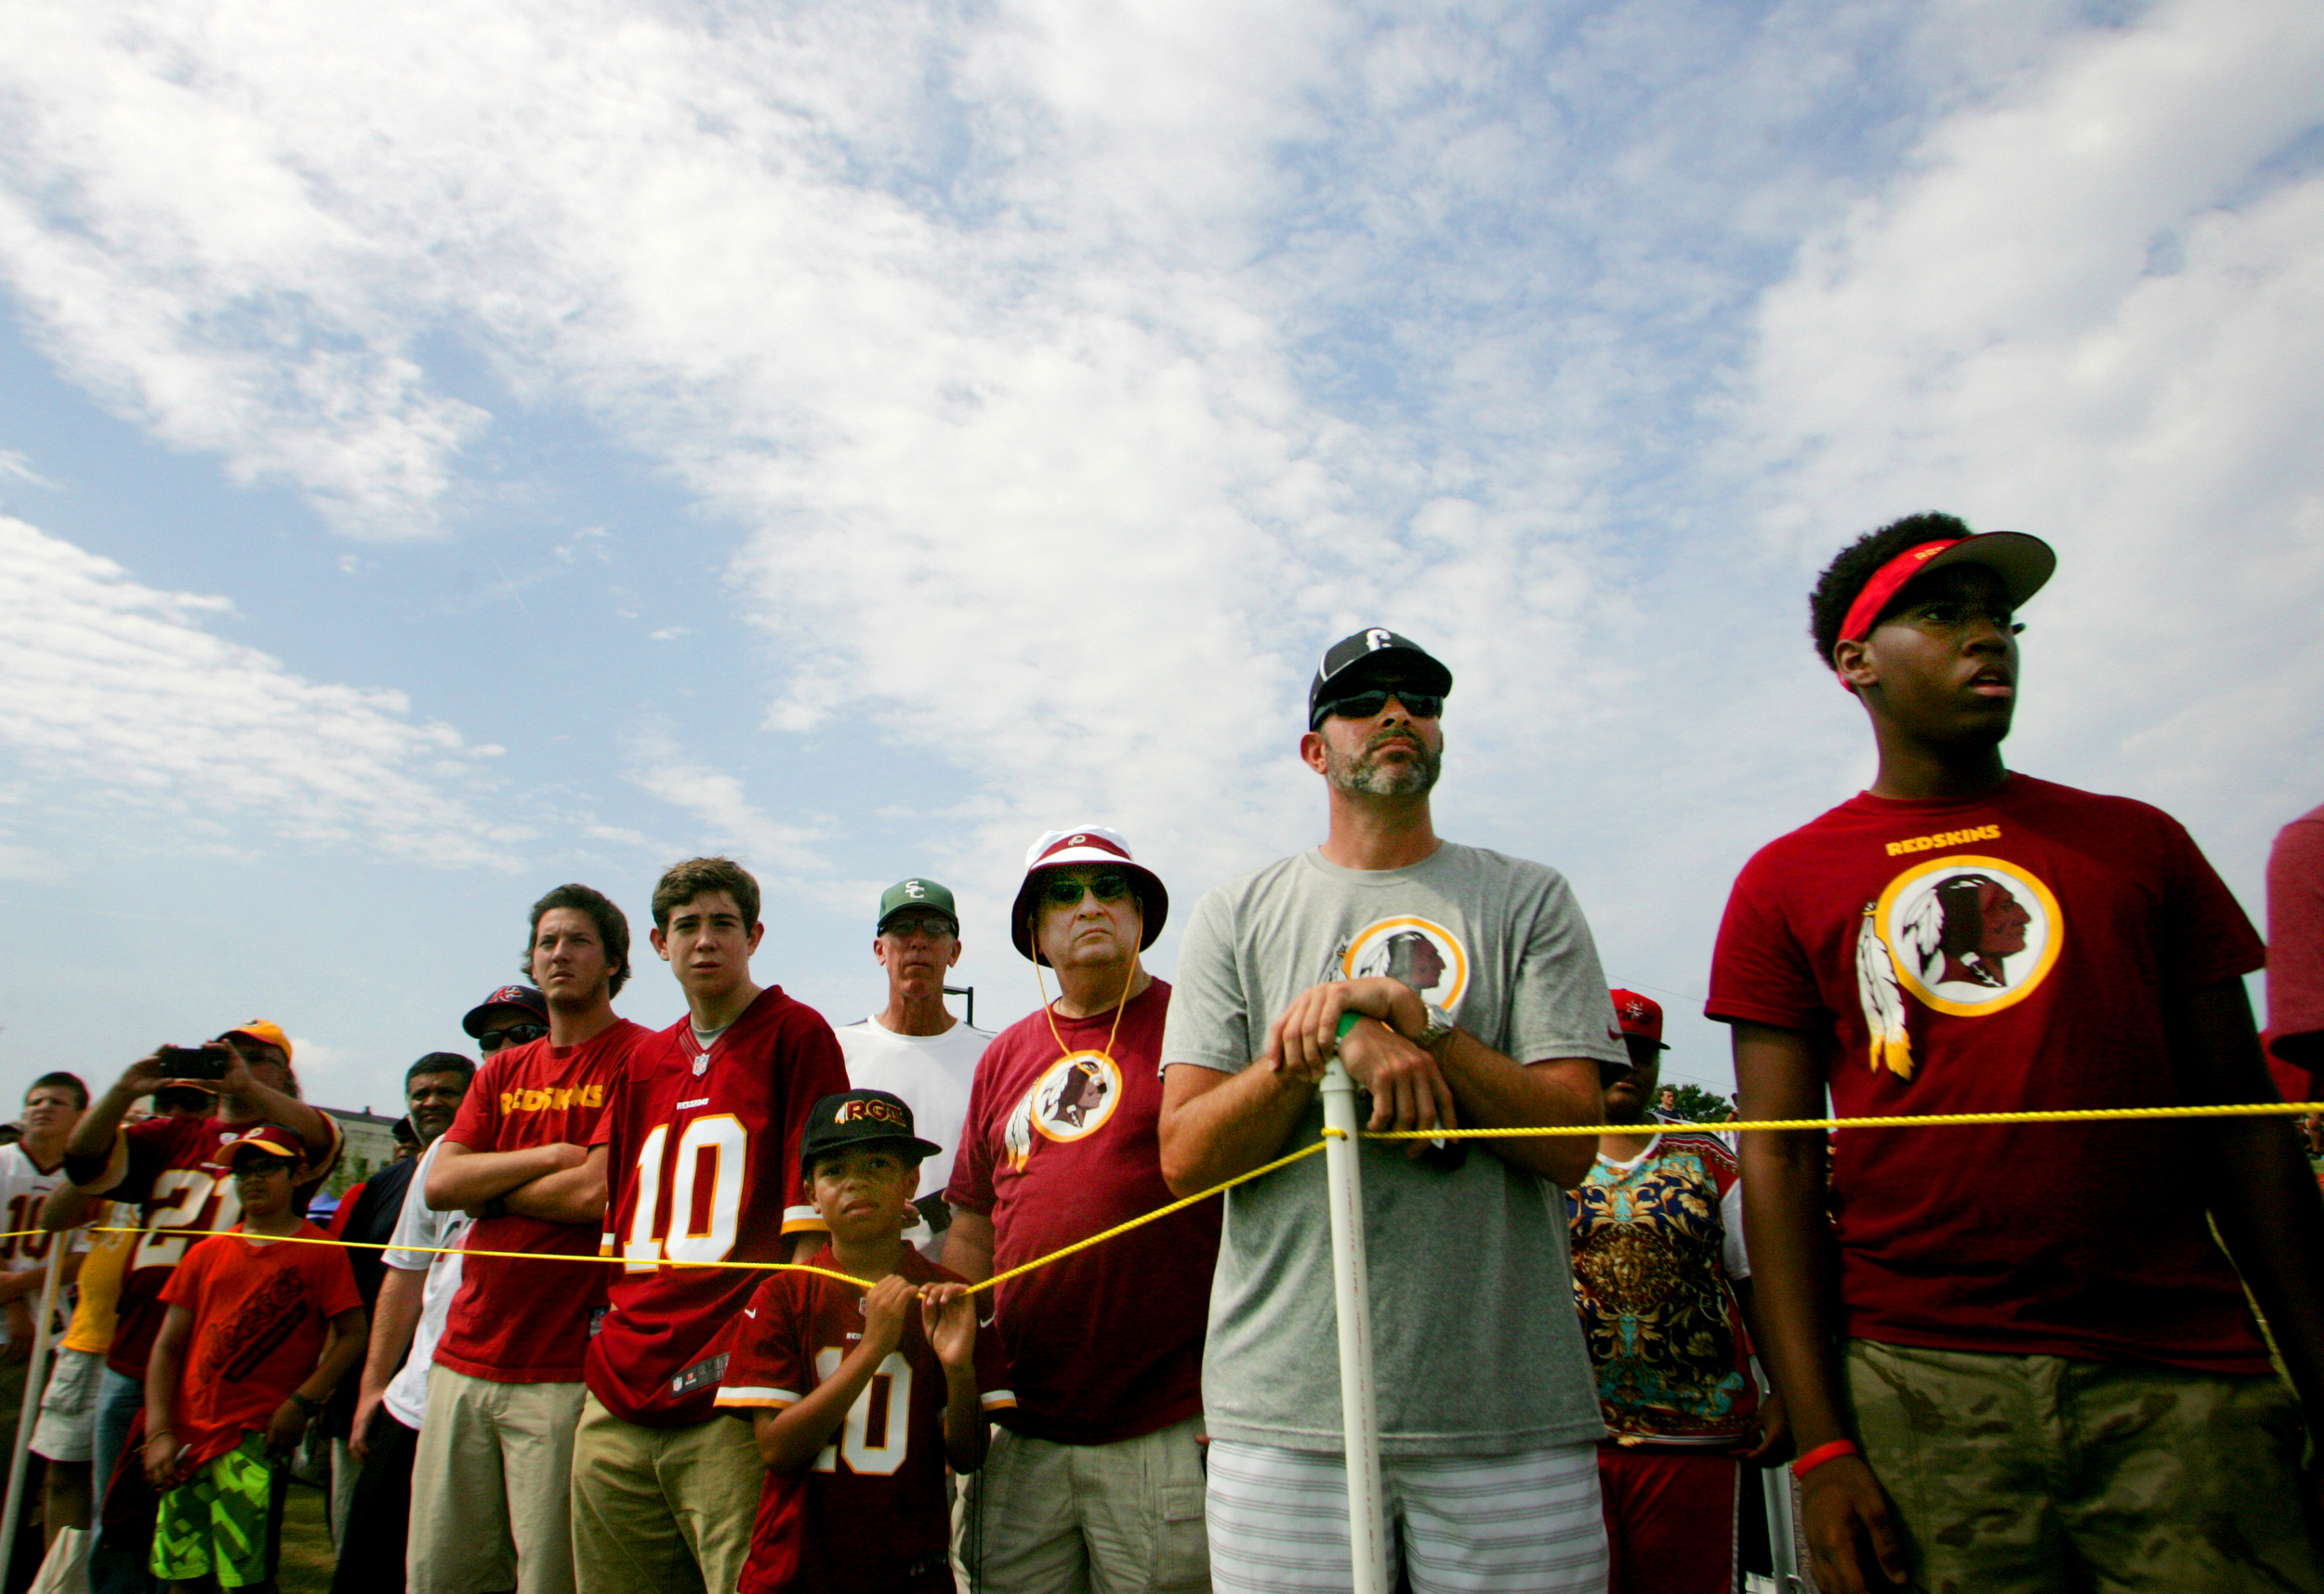 Washington Redskins fans watch from the sidelines during the team's NFL football training camp in Richmond, Va., Thursday, July 30, 2015. (AP Photo/Jason Hirschfeld)